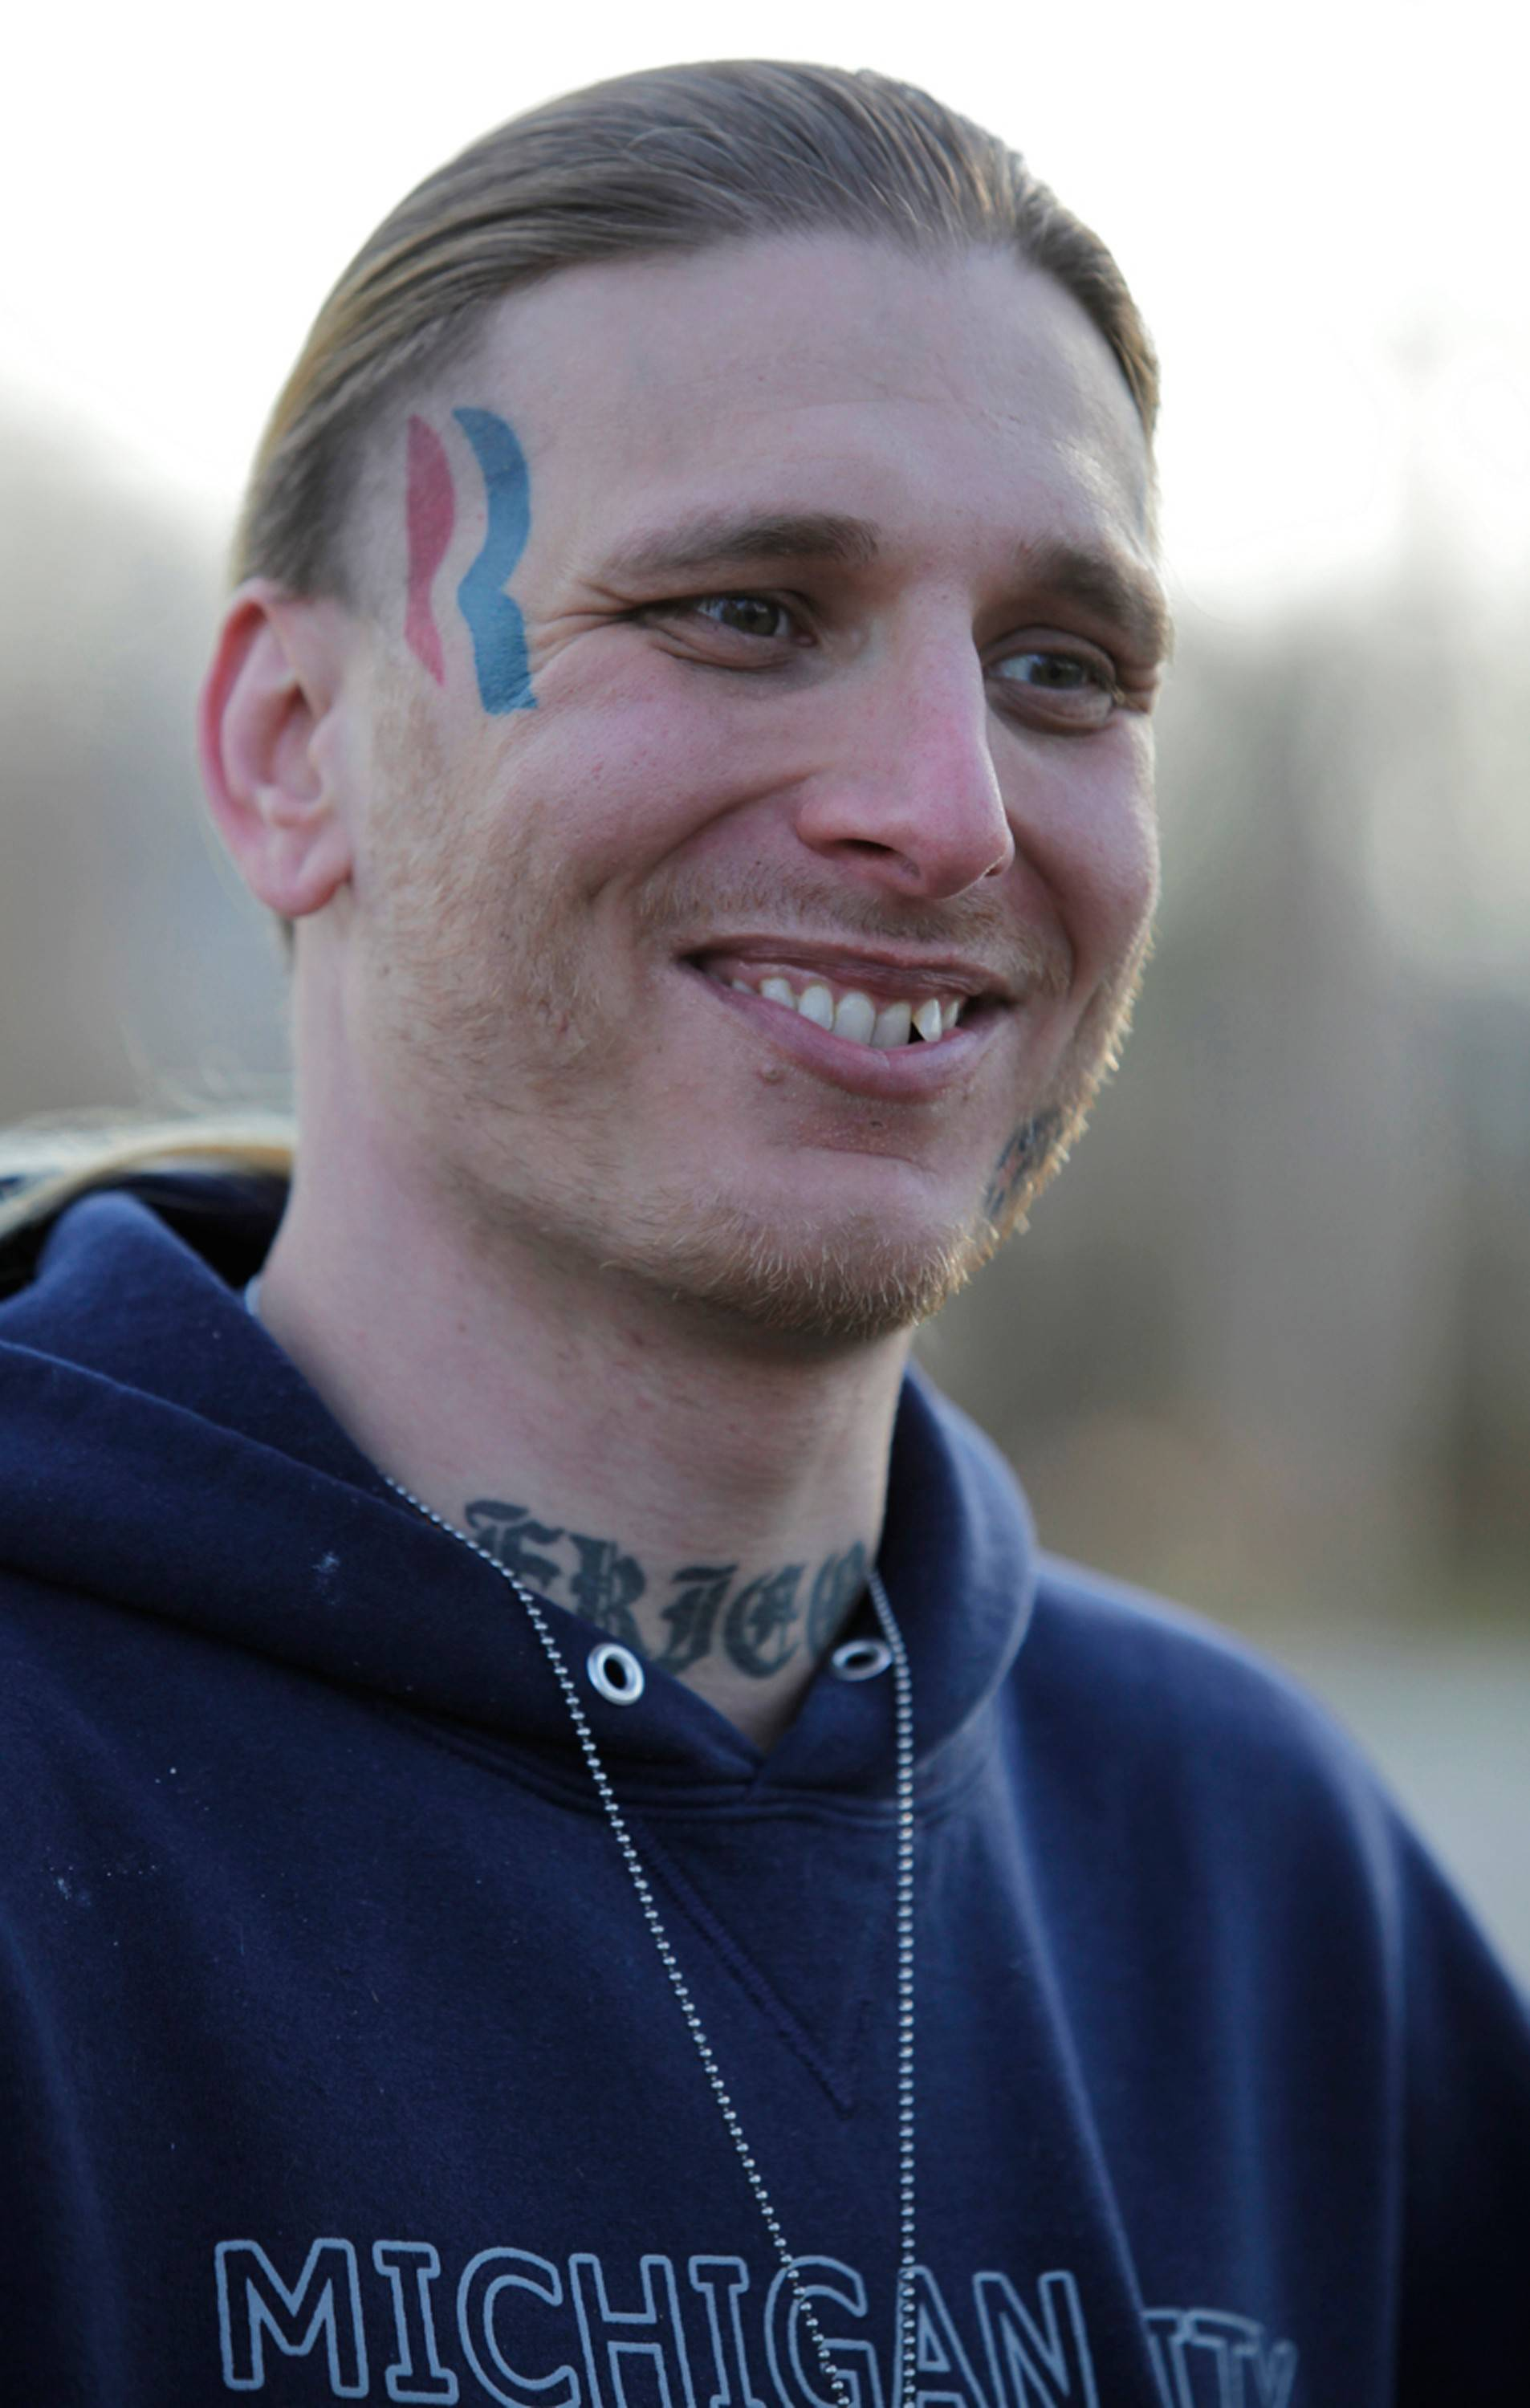 Eric Hartsburg, 30, hoped his Romney-Ryan election logo tattoo would make politics more fun.